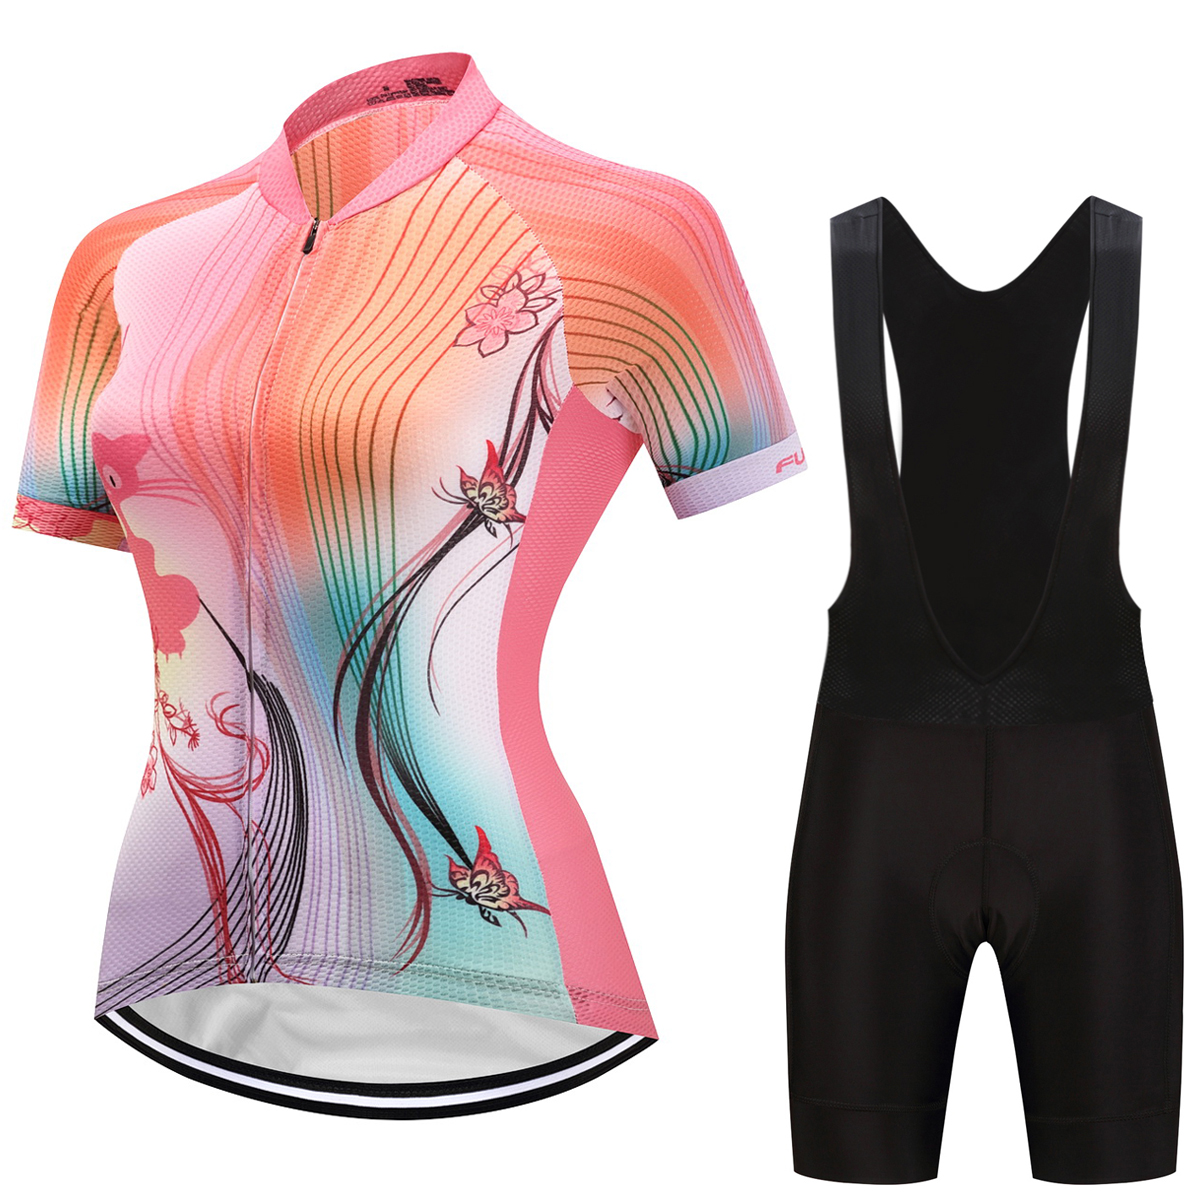 Fualrny 2018 Women Summer Breathable Pro Cycling Jerseys Set Quick Dry Bicycle Clothes Ropa Maillot Ciclismo MTB Bike Clothing